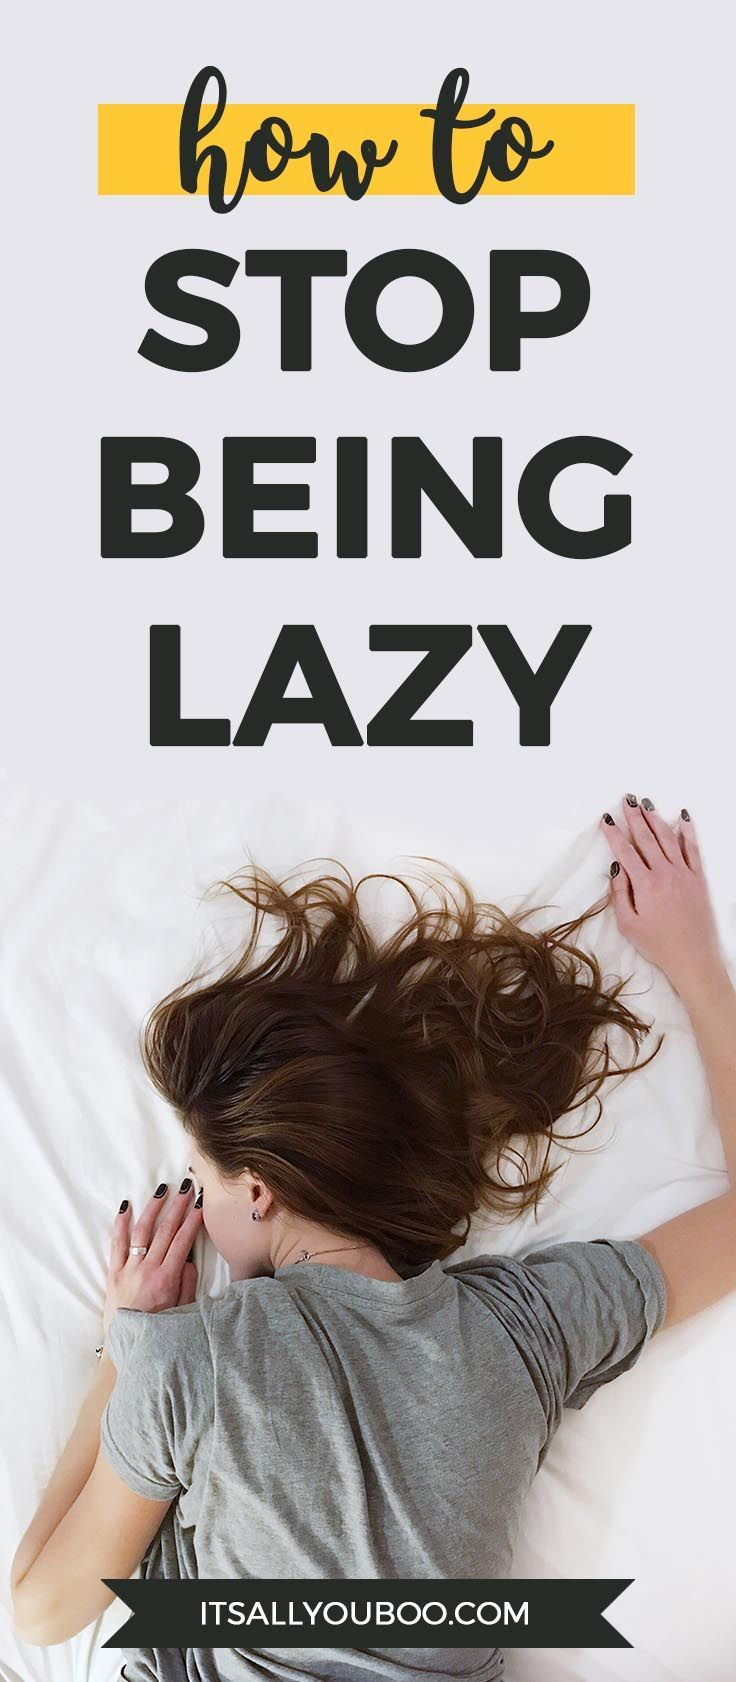 Tired of being so lazy that you can't get anything done? Here are 5 steps to being more productive at work and with your blog/business. These top tips help you hack your productivity. #productivity #productive #todolist #scheduling #planning #lazysunday #lazylife #noexcuses #focus #makeithappen  #entrepreneurlife #entrepreneurlifestyle #workfromhome #success #millennialblogger #bloggerlife #millennials